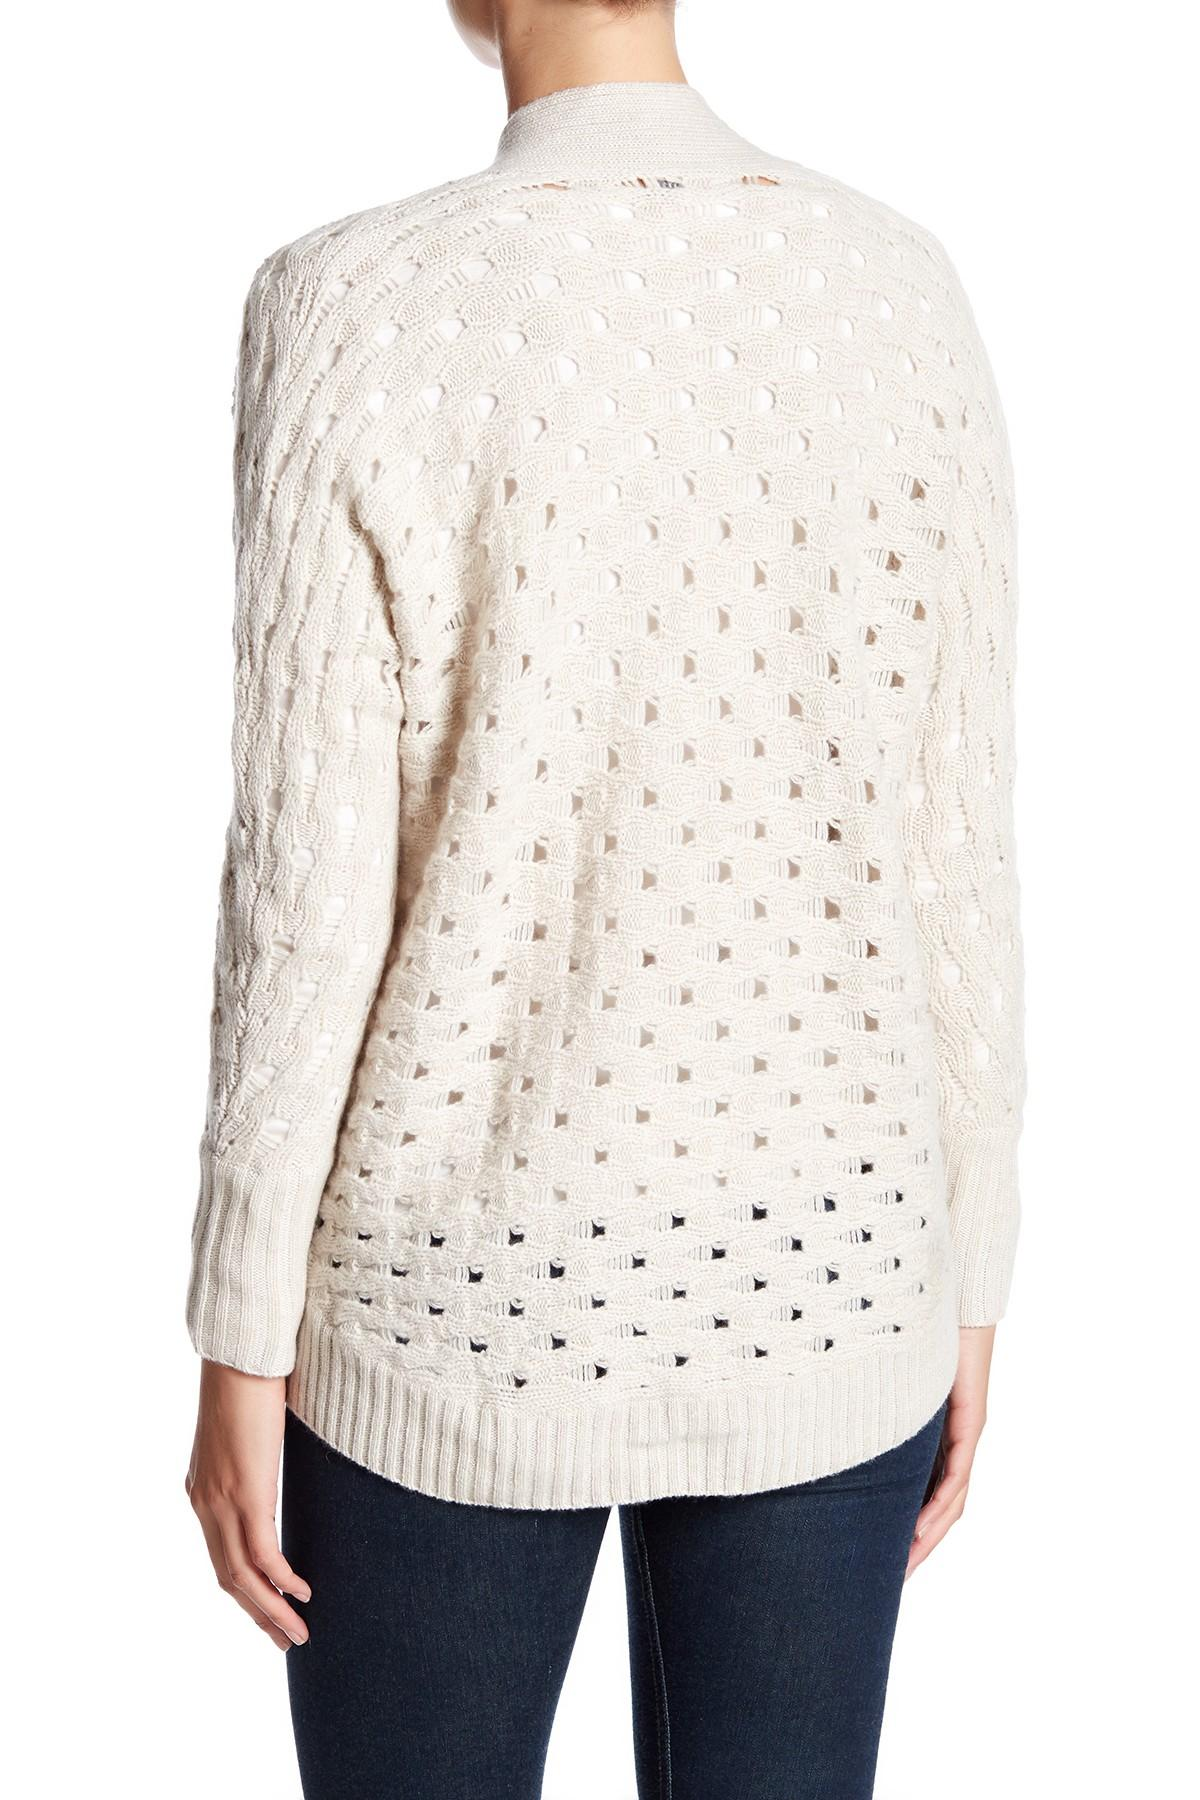 kinross women Find great deals on ebay for kinross cashmere shop with confidence.